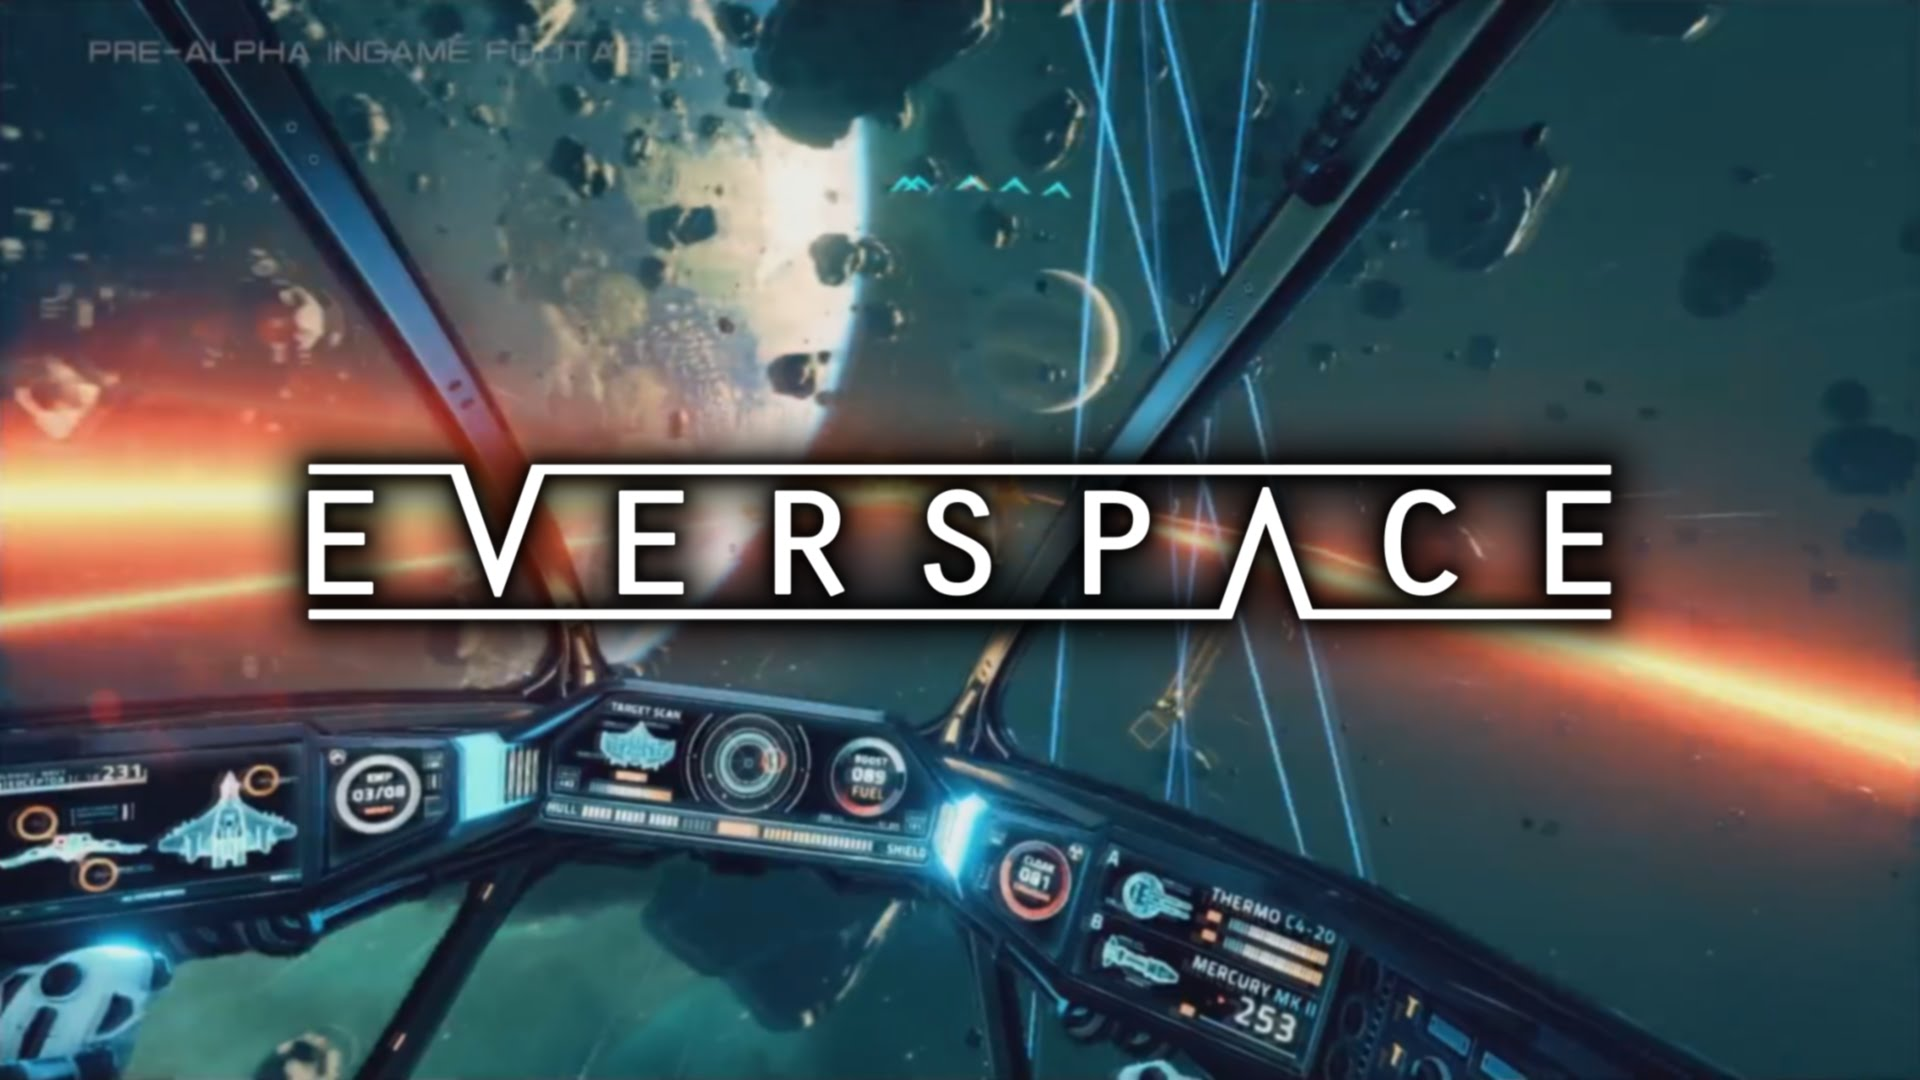 everspace 12.09.16 image01